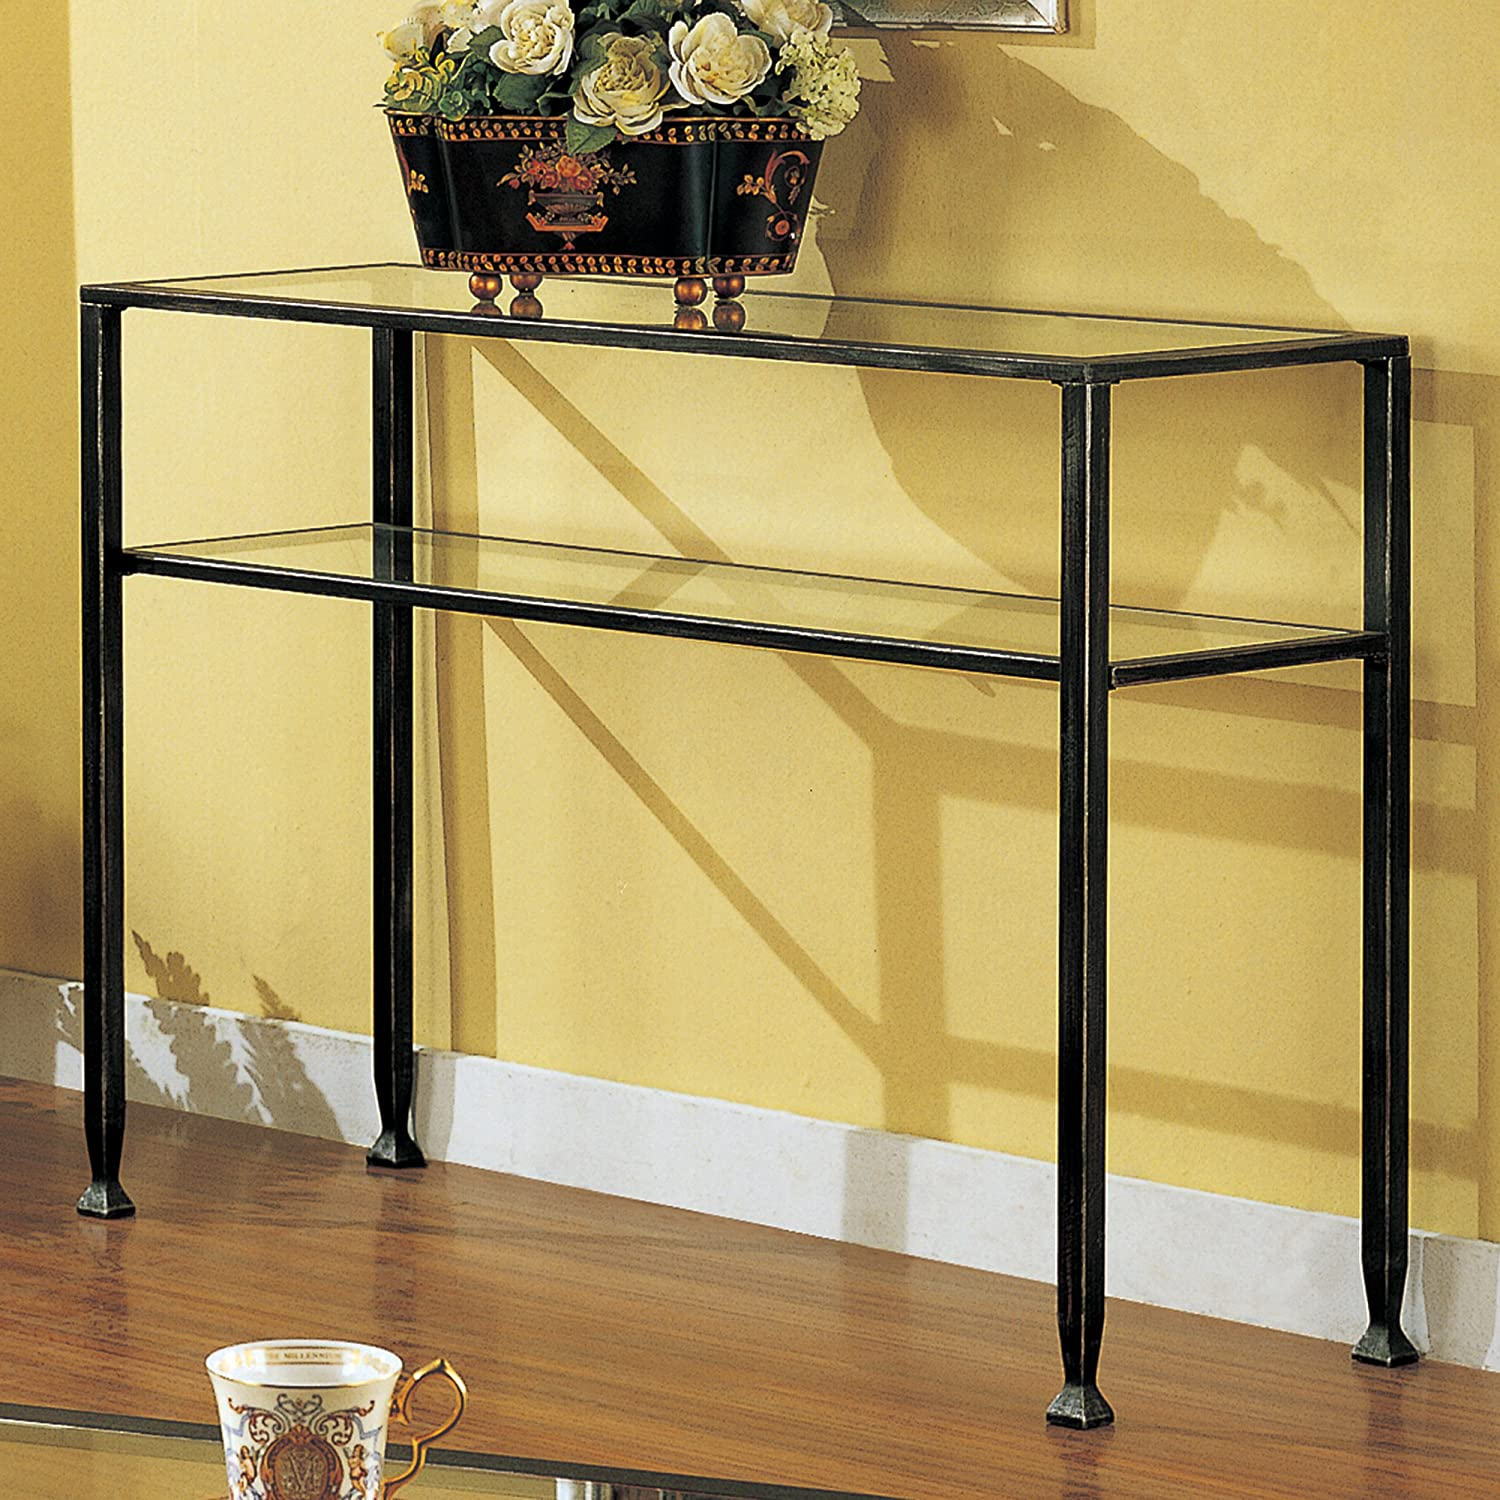 Amazon southern enterprises sofa console table black with amazon southern enterprises sofa console table black with silver distressed finish kitchen dining geotapseo Image collections